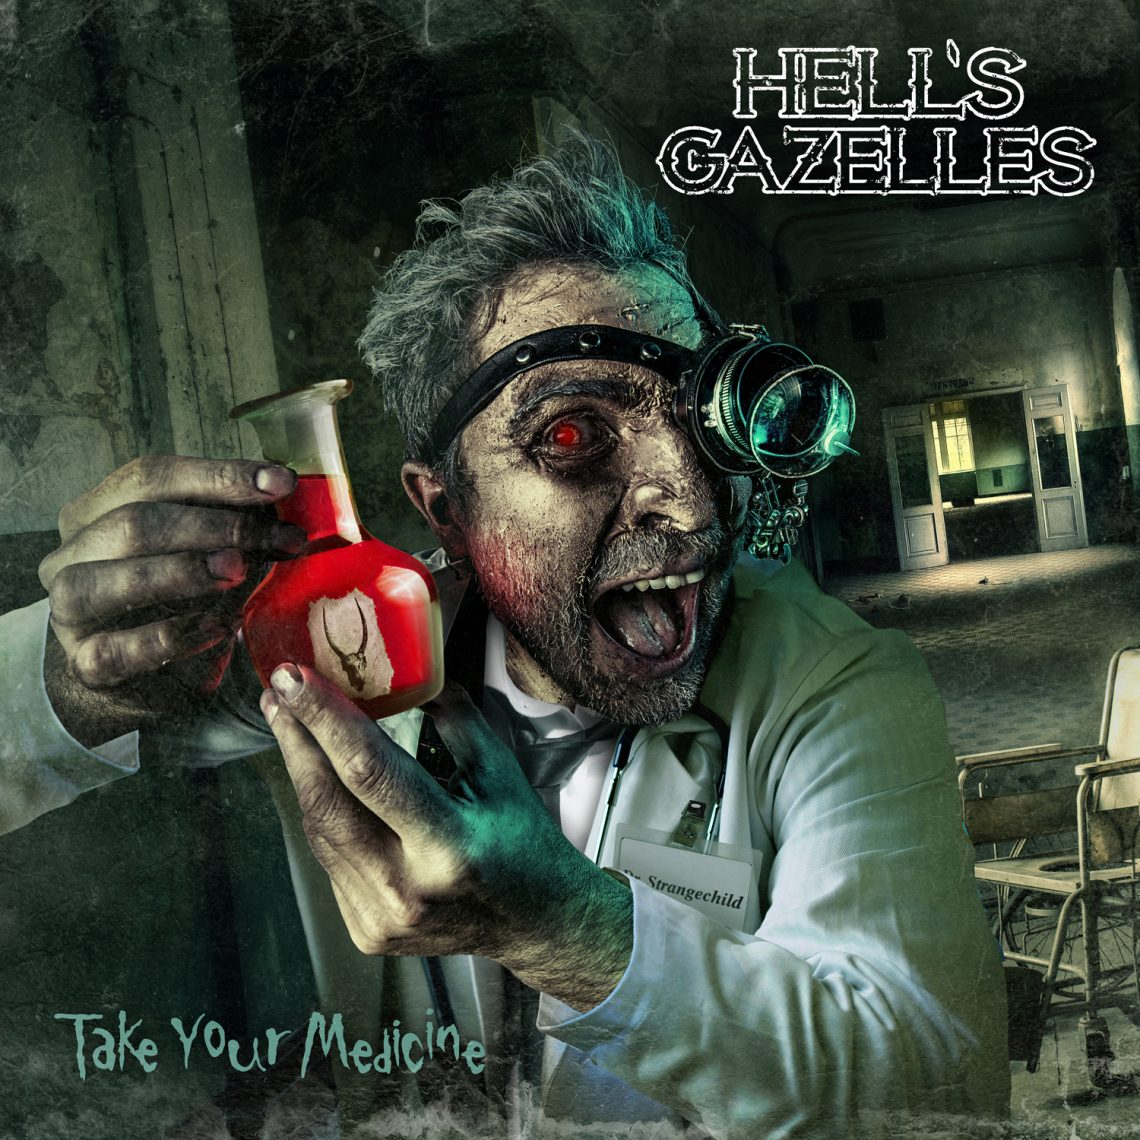 """Hell's Gazelles – """"Take Your Medicine"""" EP"""